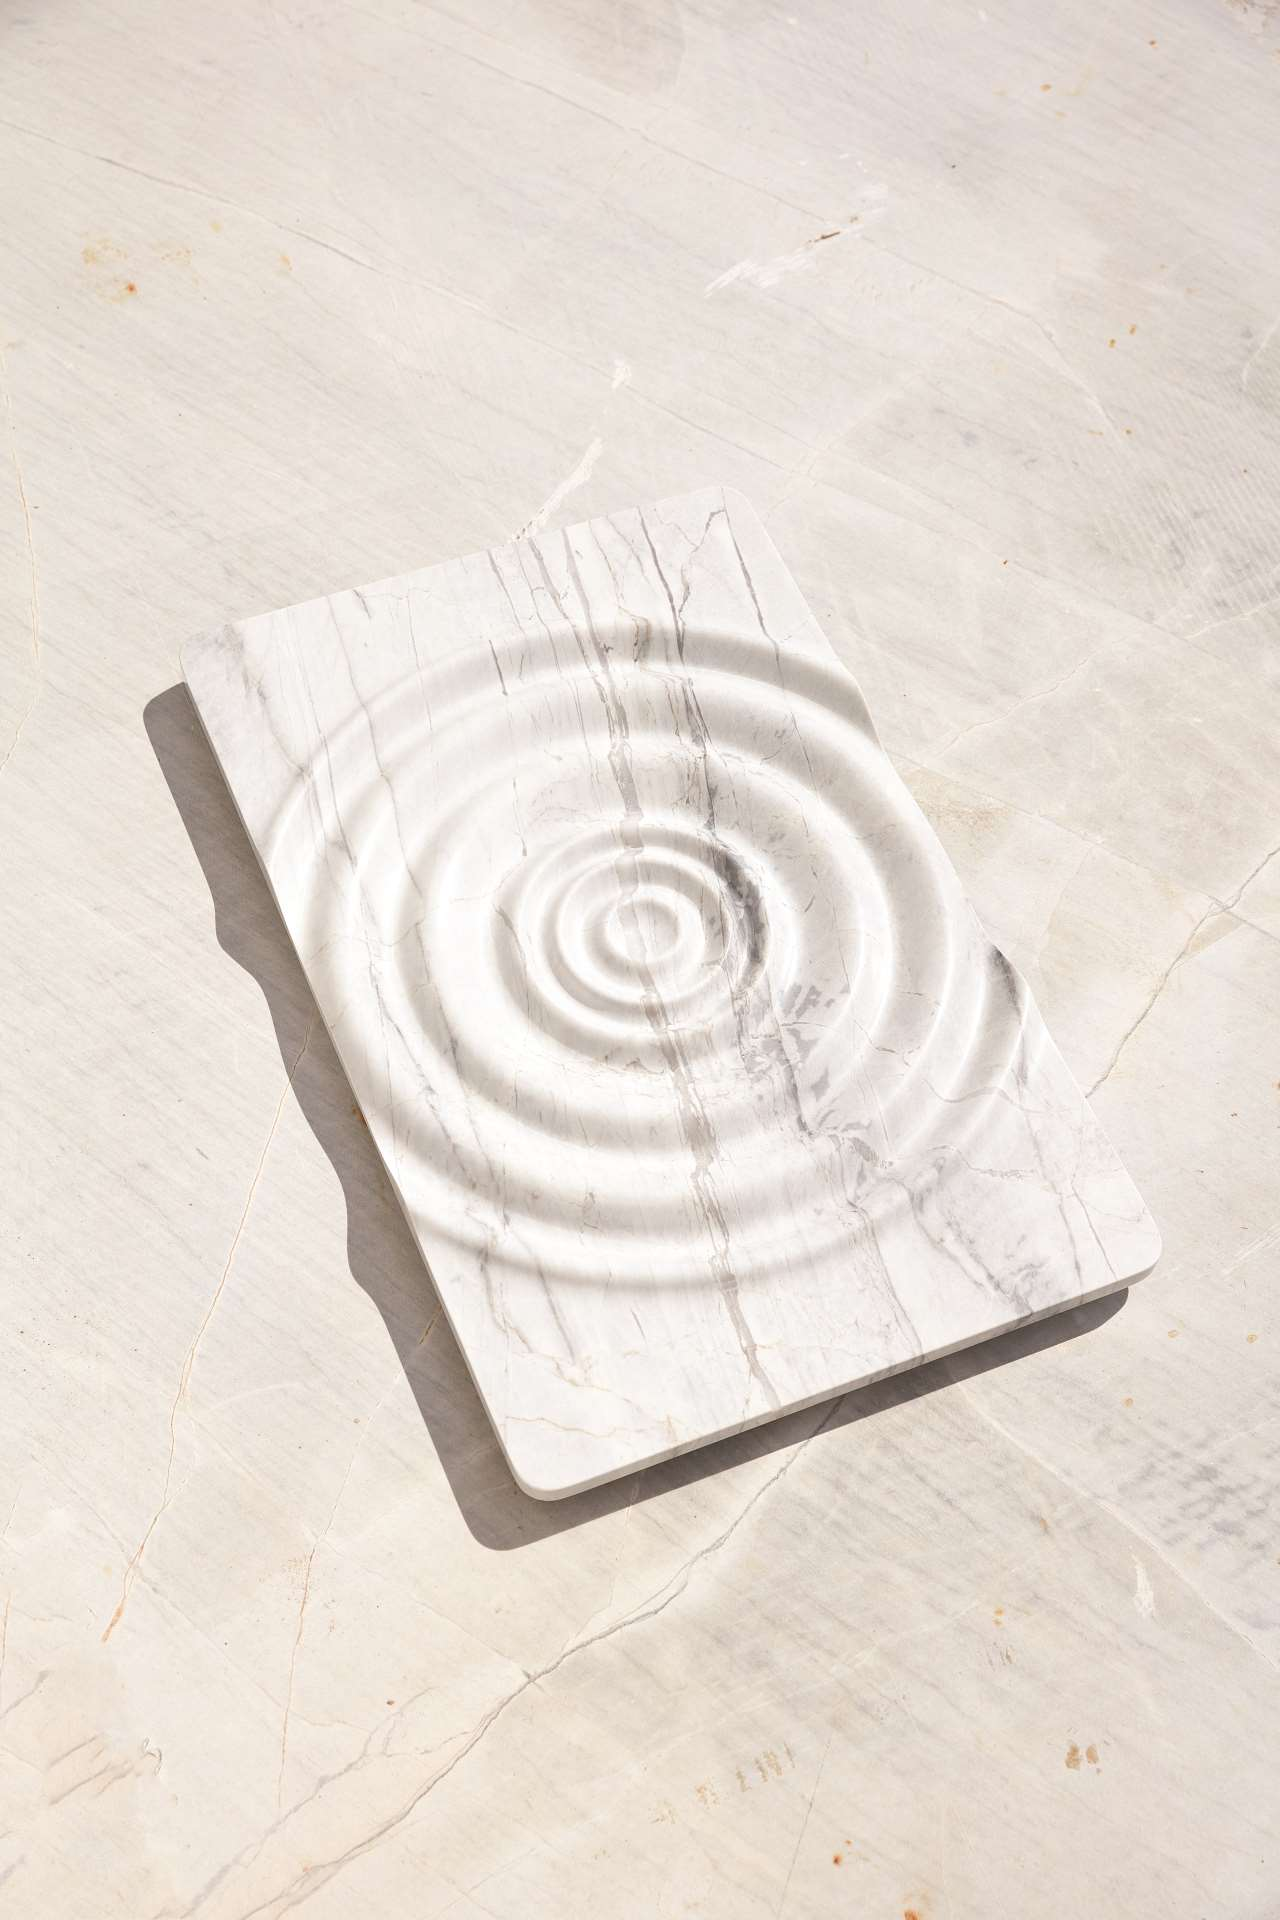 Lydn designed by Thomas Coward, Elba marble, 600 x 380 x 45mm. Part of New Volumes collection by Artedomus. Photo by Sean Fennessy.